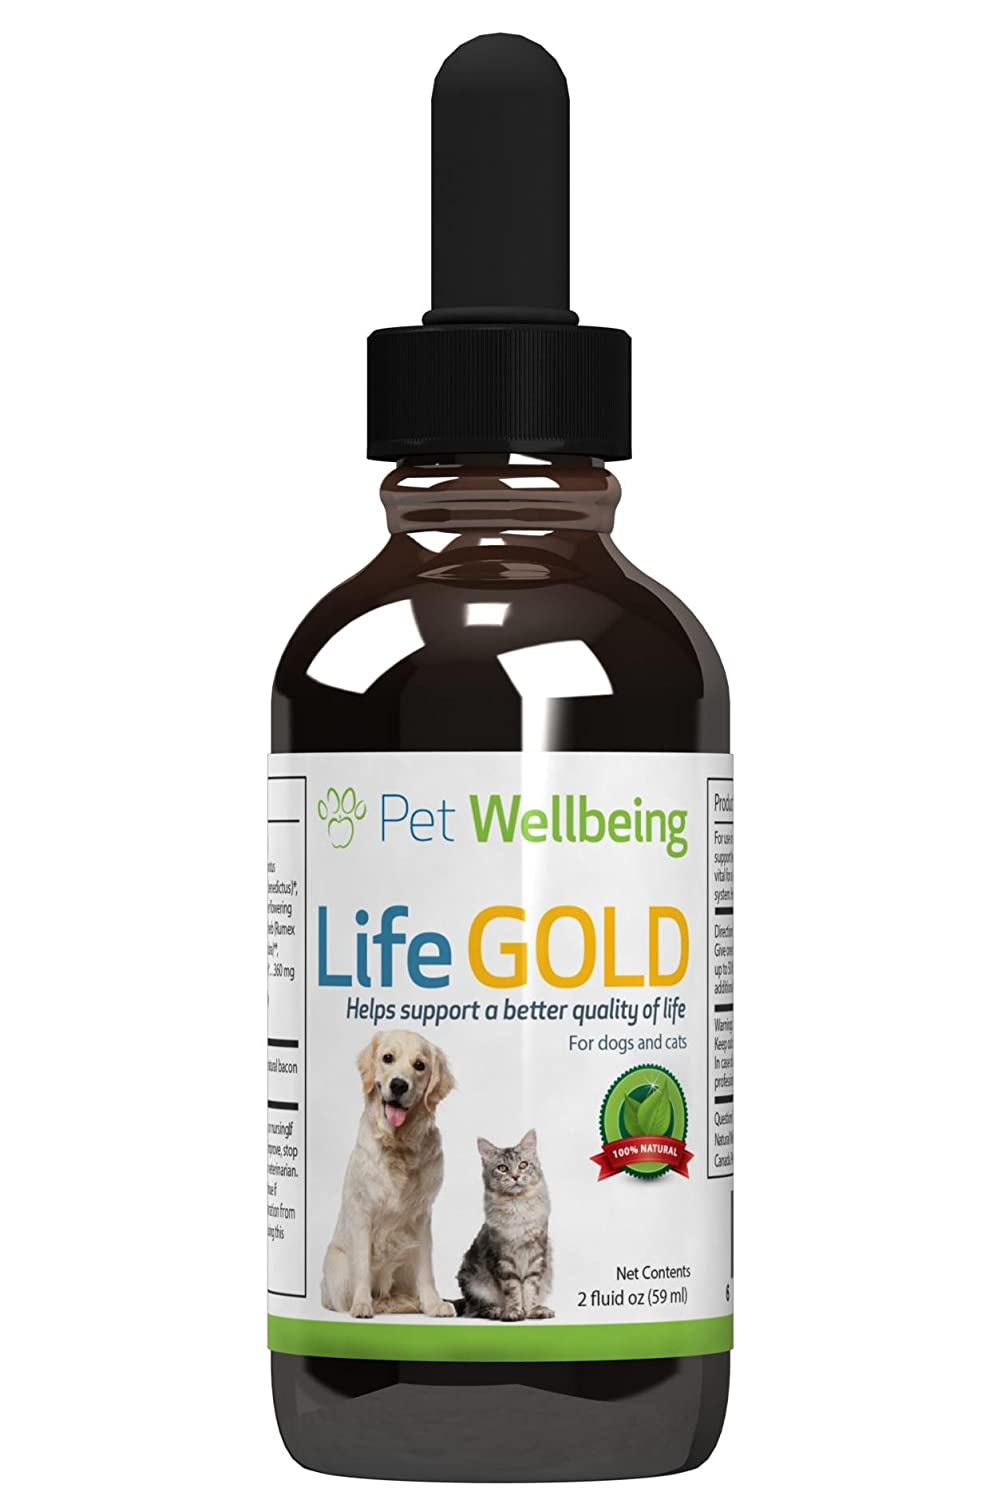 Cancer herbs for dogs - Pet Wellbeing Life Gold Dog Cancer Support A Natural Herbal Supplement That Helps Manage The Symptoms Of Canine Cancer 2 Oz Liquid Bottle